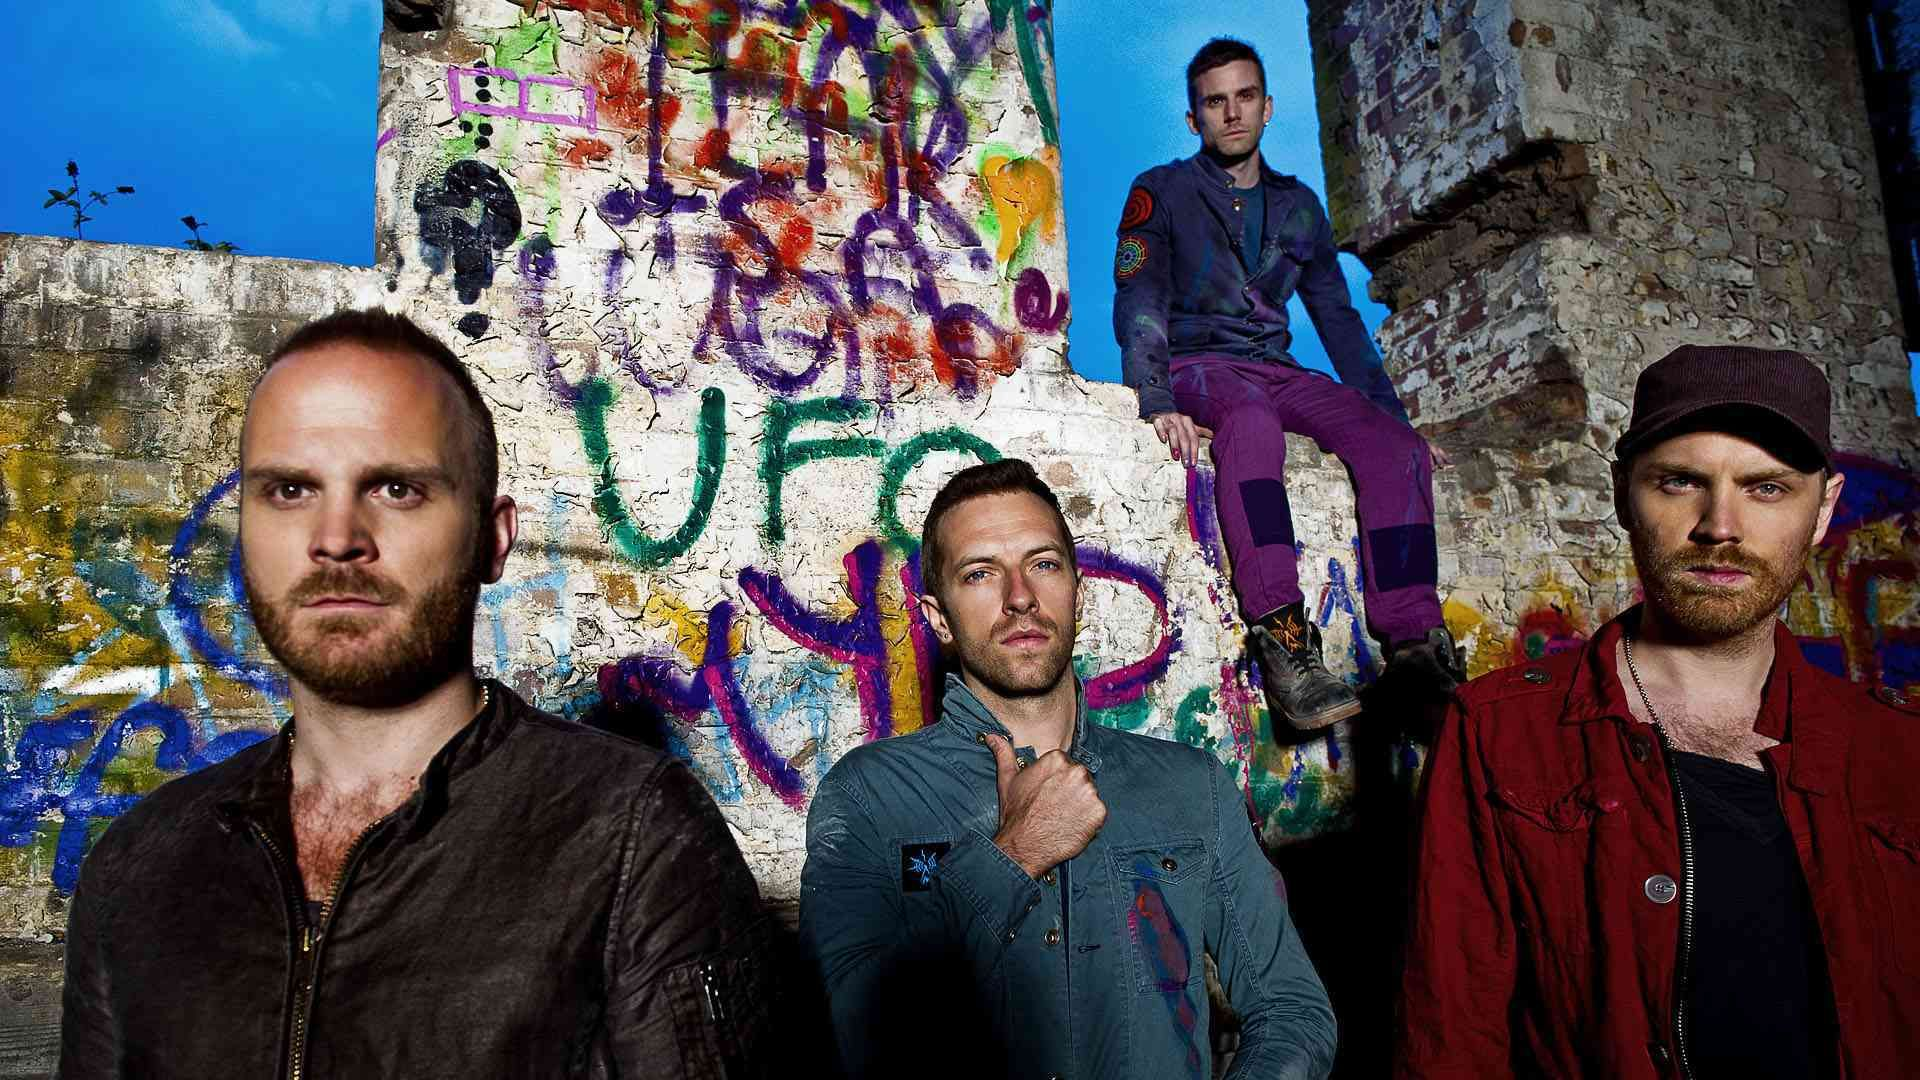 Best ideas about coldplay wallpaper on pinterest sky full hd best ideas about coldplay wallpaper on pinterest sky full voltagebd Choice Image